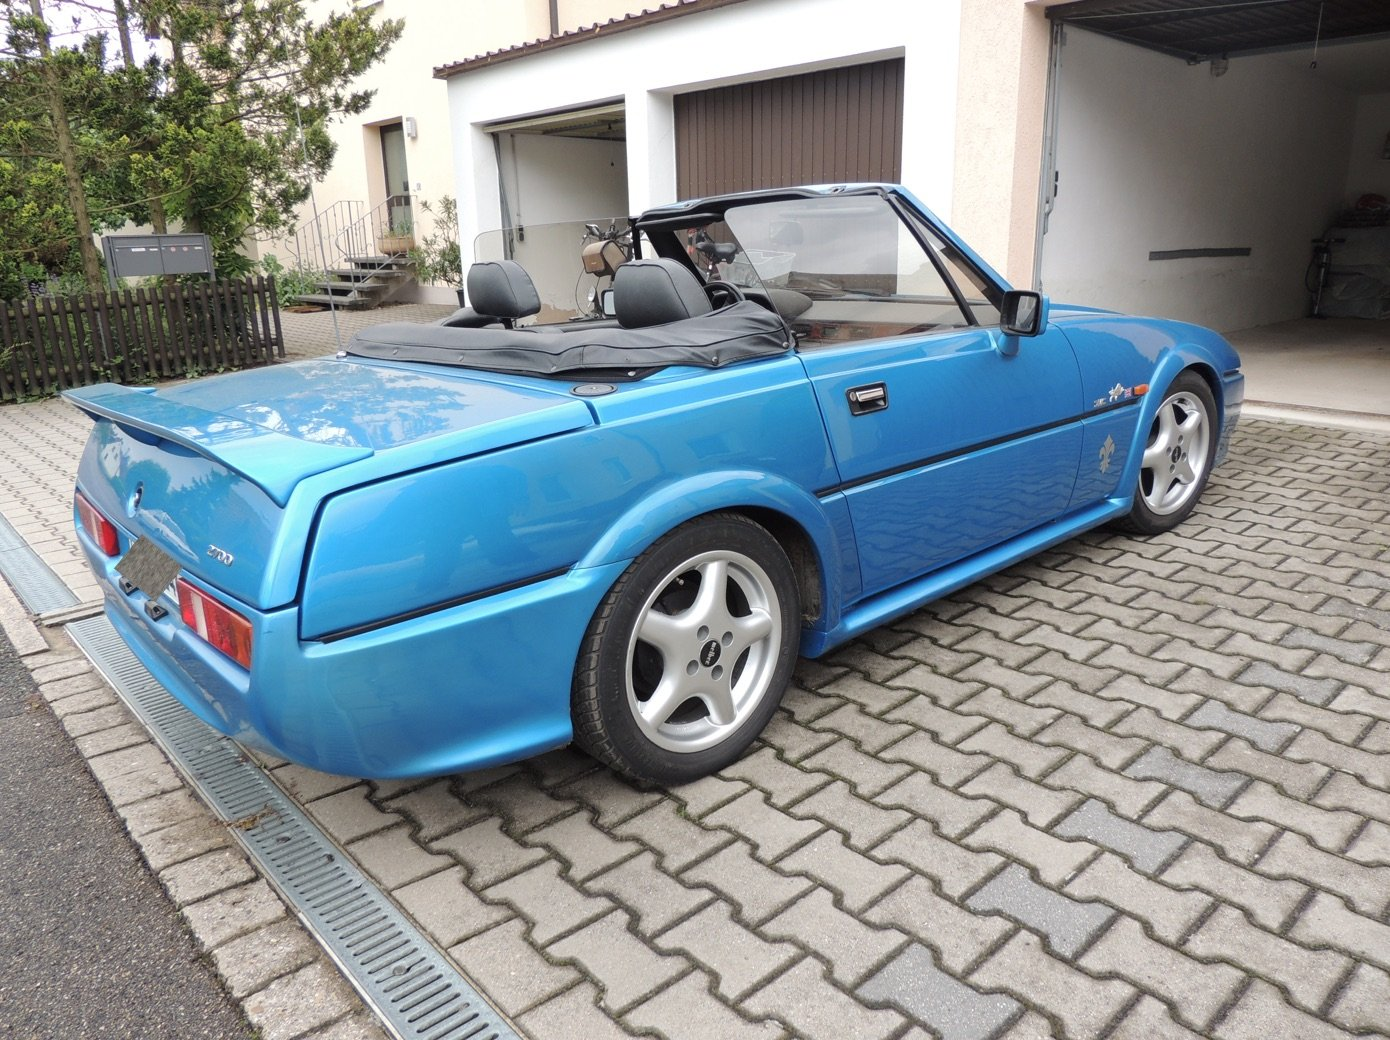 1998 Reliant Scimitar Sabre LHD SOLD (picture 3 of 6)